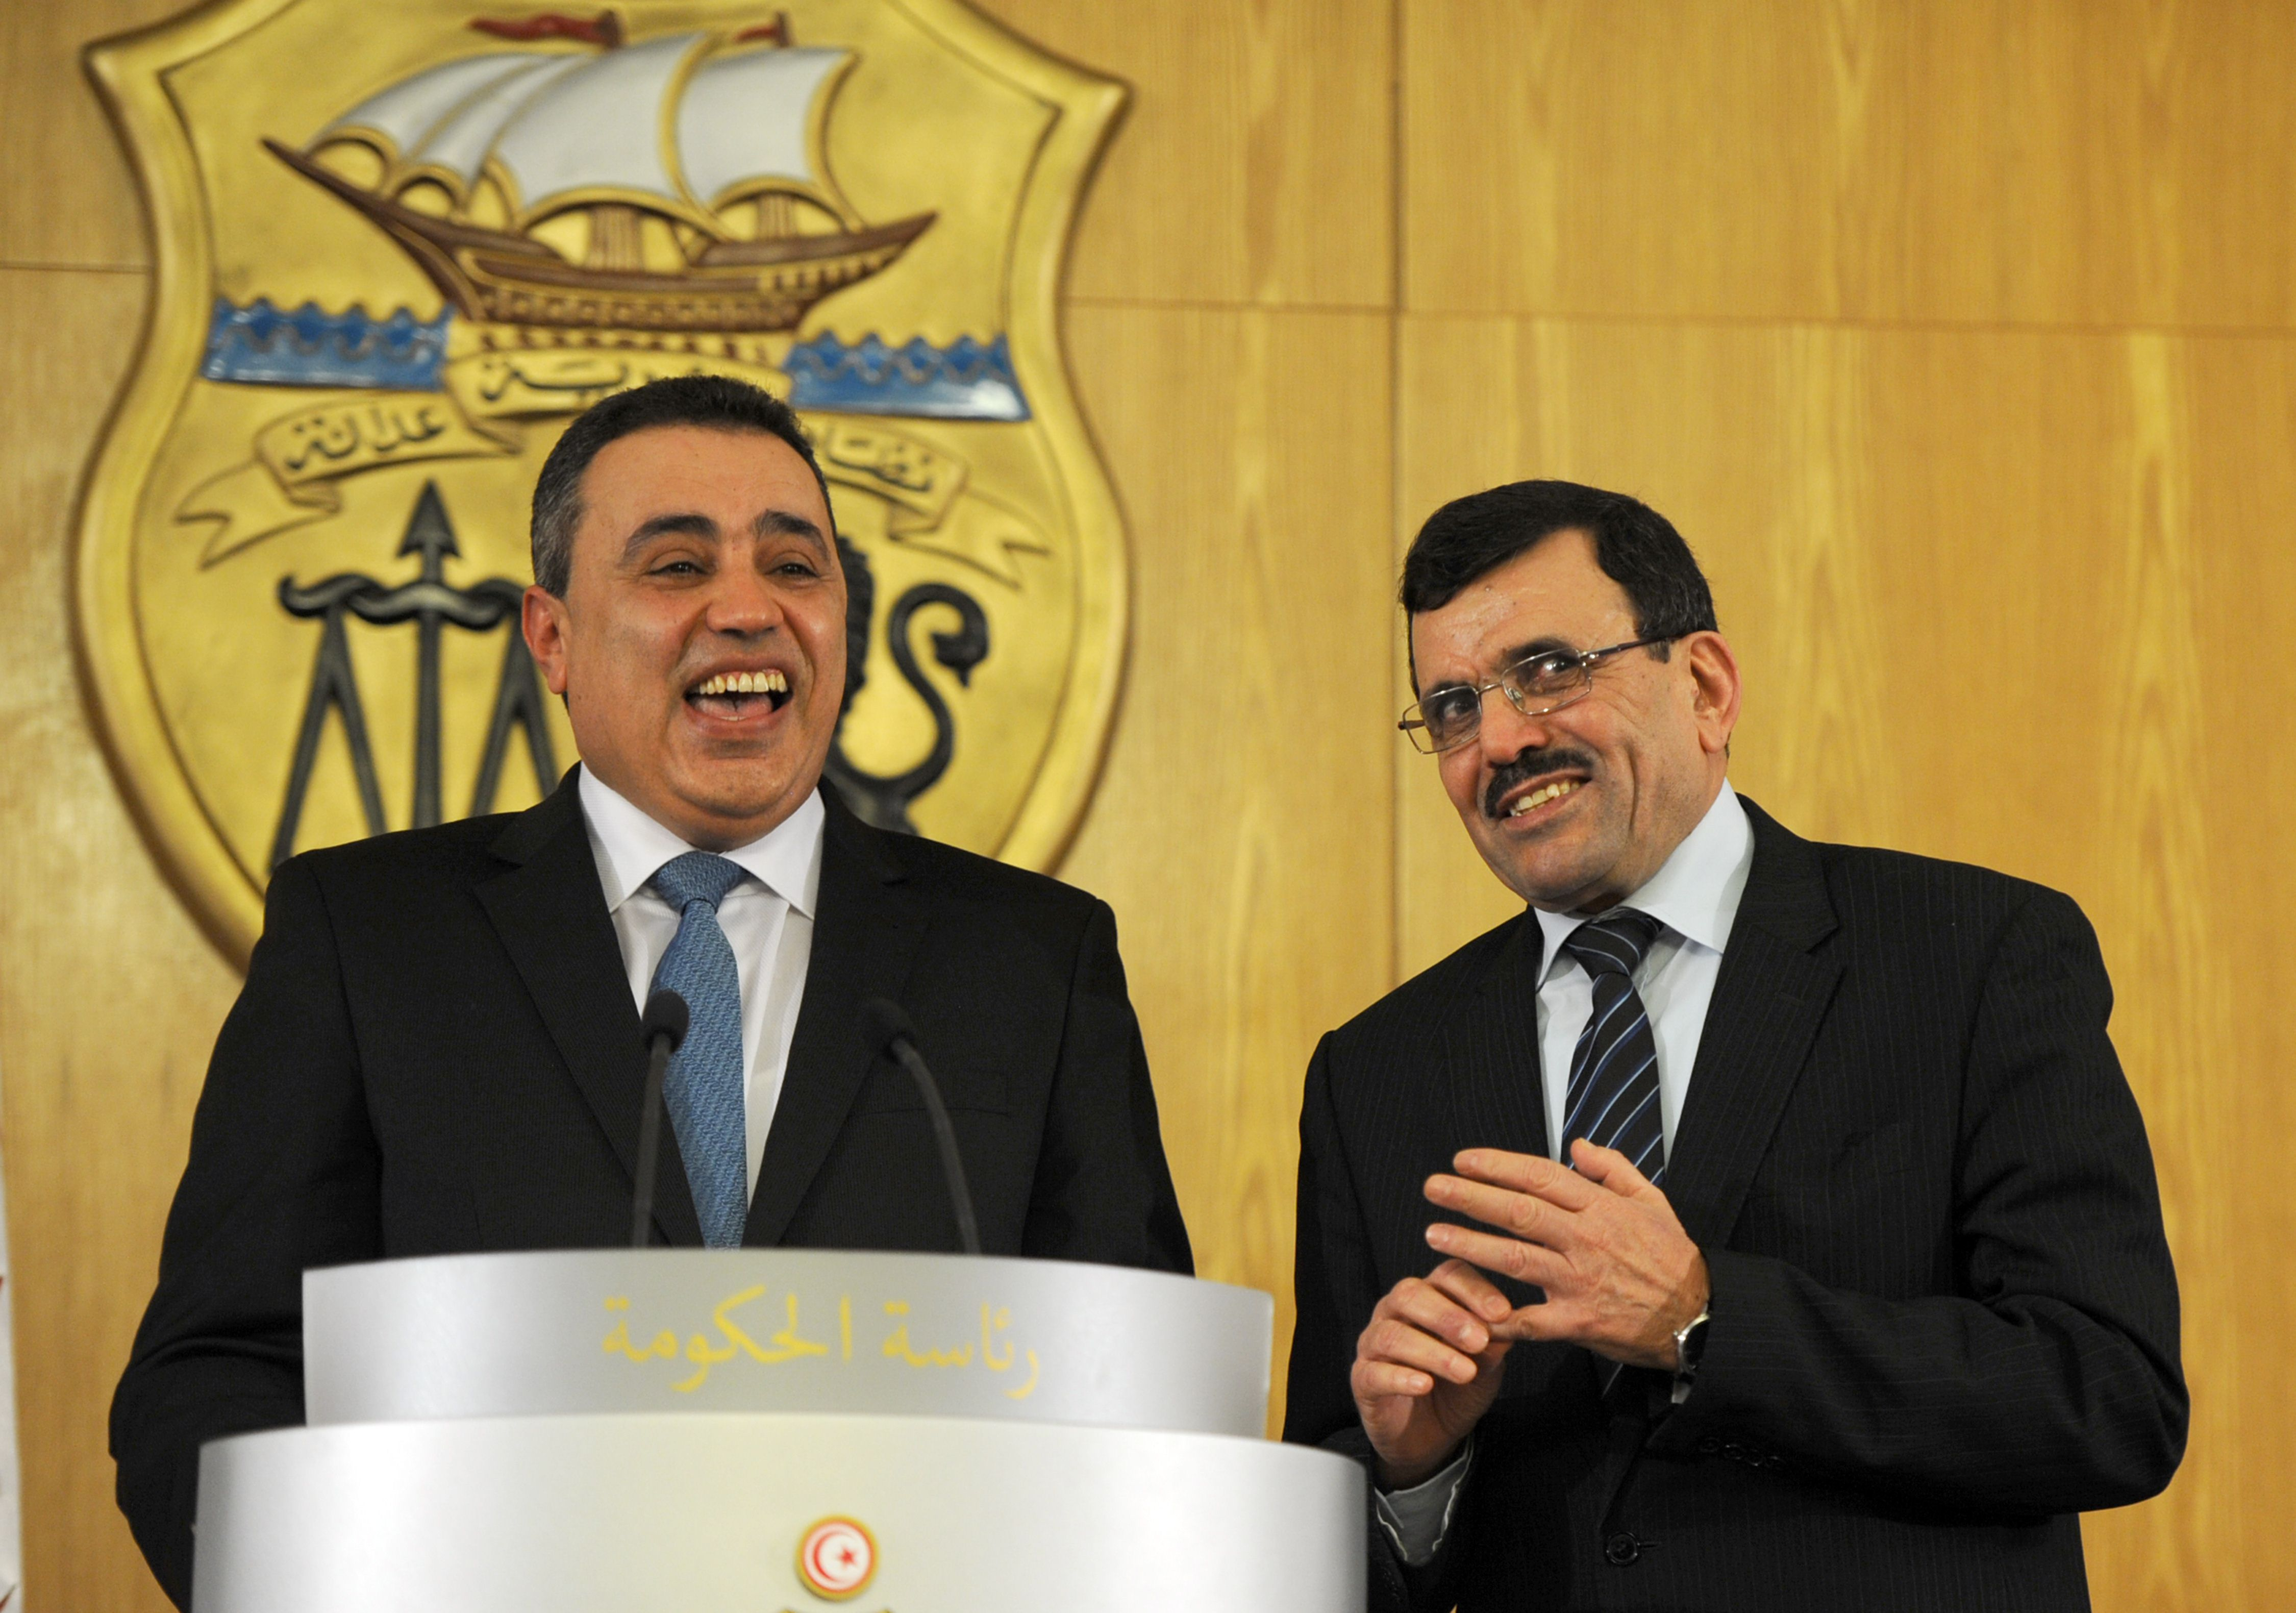 Tunisia's new Prime minister Mehdi Jomaa (L) stands at the podium next to his predecessor Ali Laarayedh during a handover ceremony in Tunis on January 29, 2014. Tunisia's parliament approved a technocratic caretaker government tasked with leading the country out of a bruising political crisis and into fresh elections.   (AFP PHOTO/FETHI BELAID)